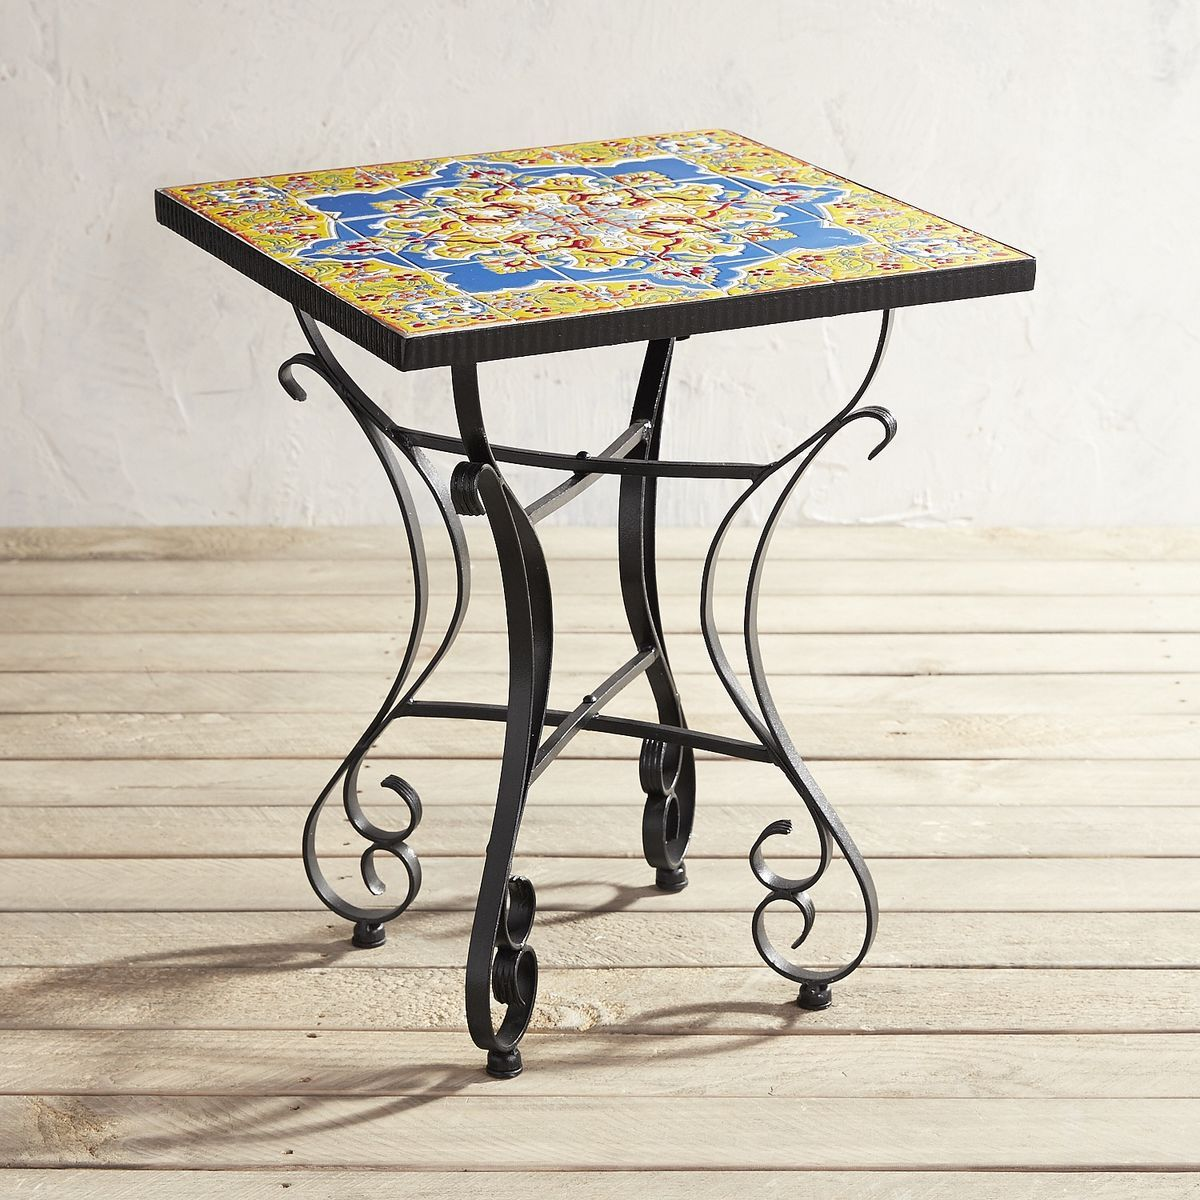 florence mosaic accent table pier imports wish list ceramic outdoor side metal clarissa eileen gray black and grey rug garden cooler painted coffee ideas dale tiffany hummingbird